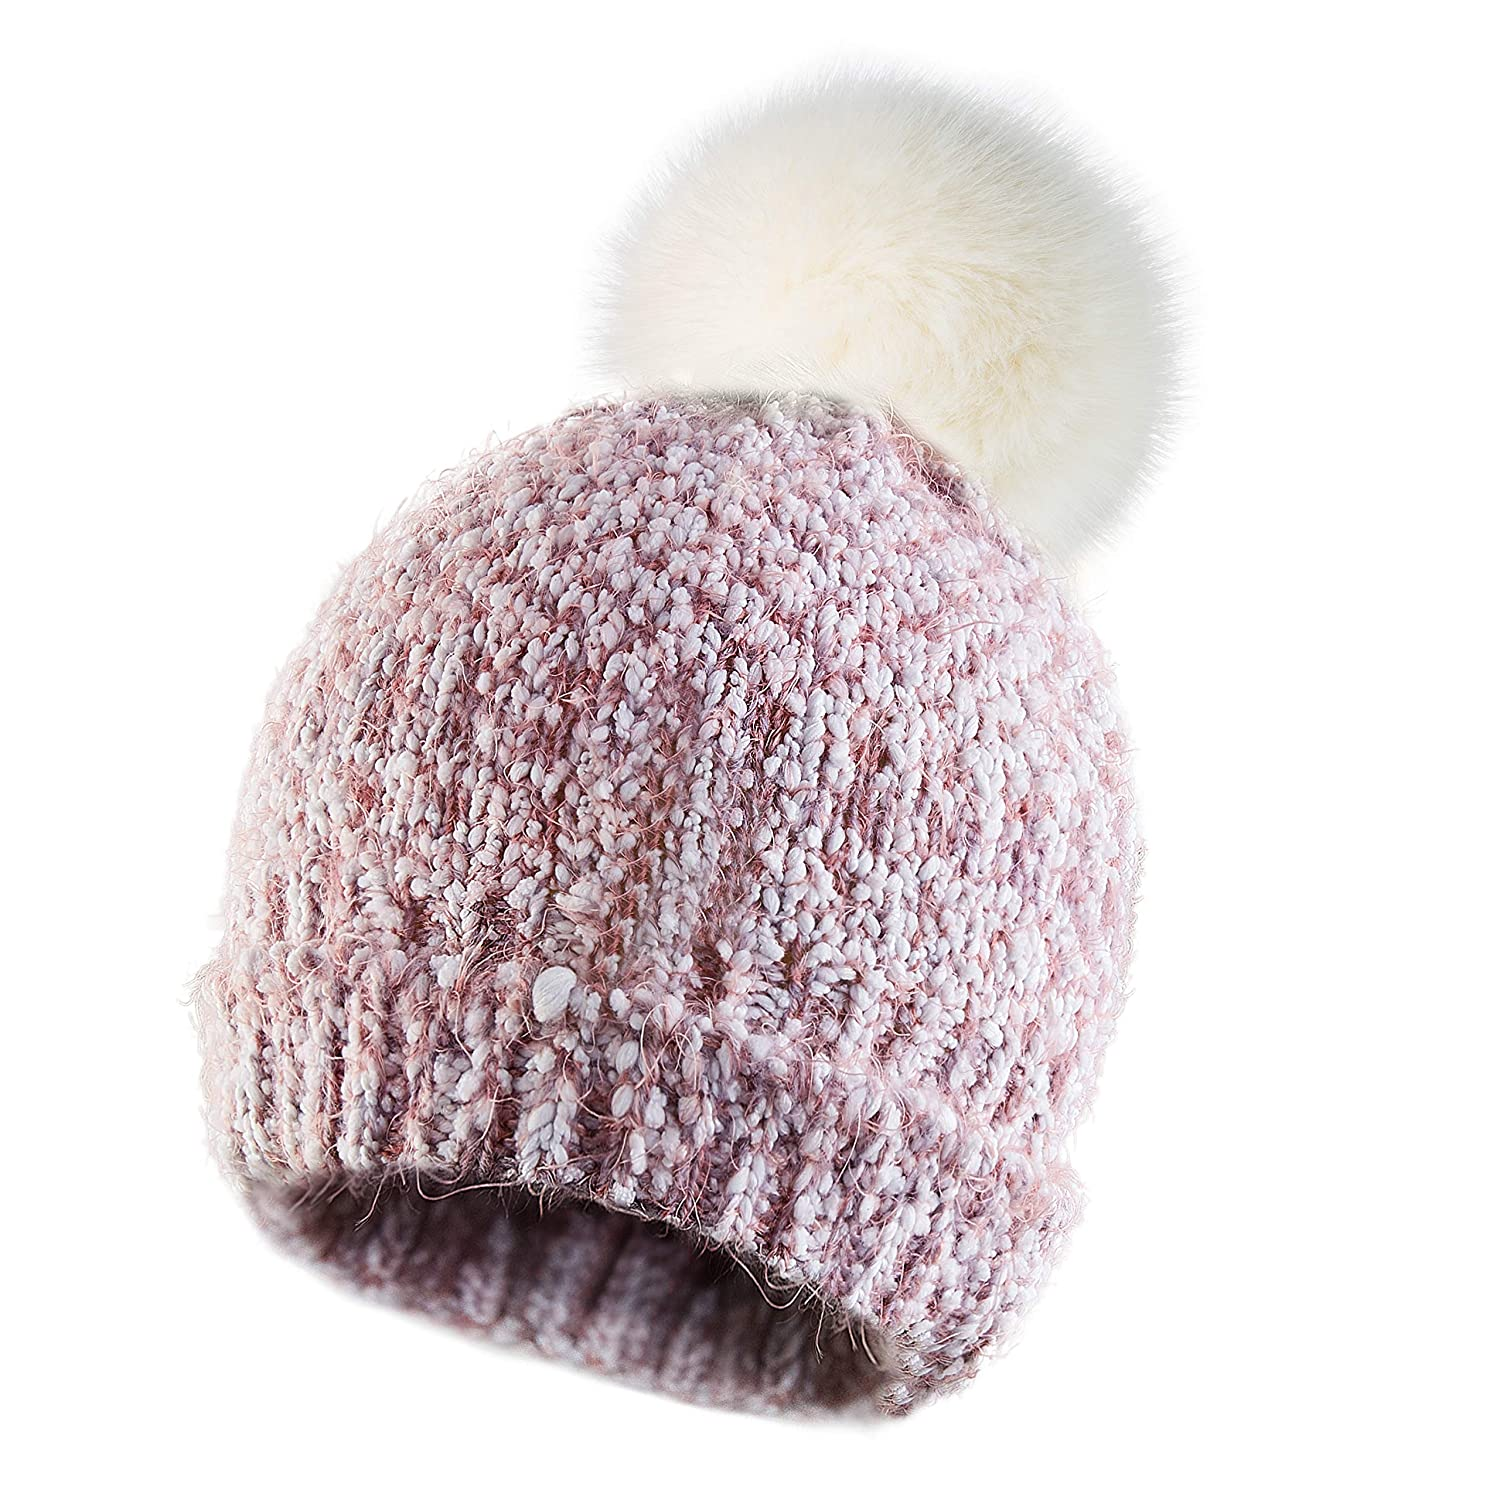 ce1cb458edb Calixto Bellísimo Women Knitted Hat Pom Pom Beanie Hats Winter Ski Cap Warm  Girl with Fur Pompoms Chunky Soft Cable Knit at Amazon Women s Clothing  store